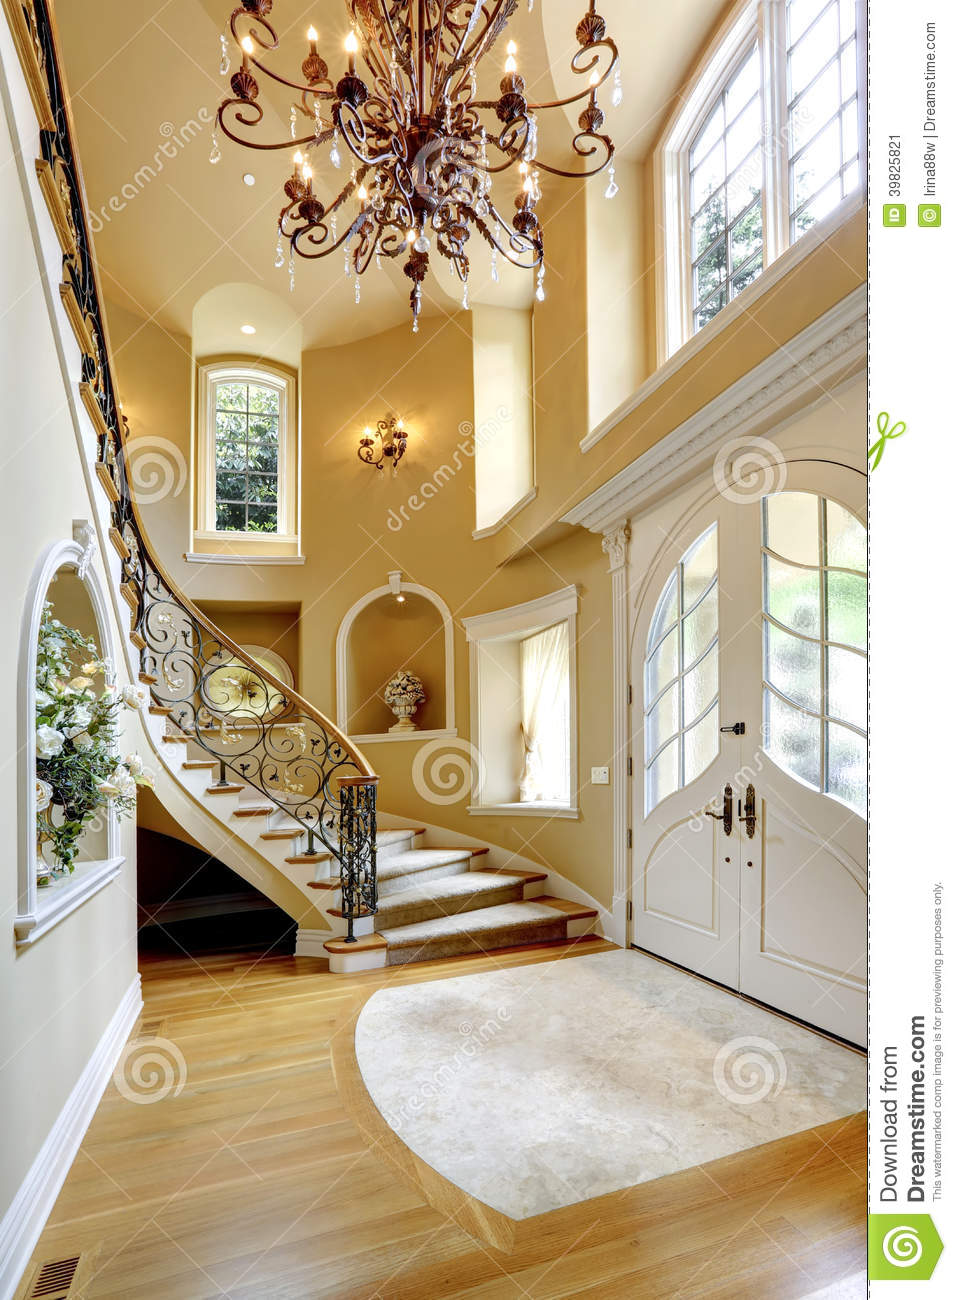 Luxury house interior entrance hallway stock image for Interieur maison de luxe